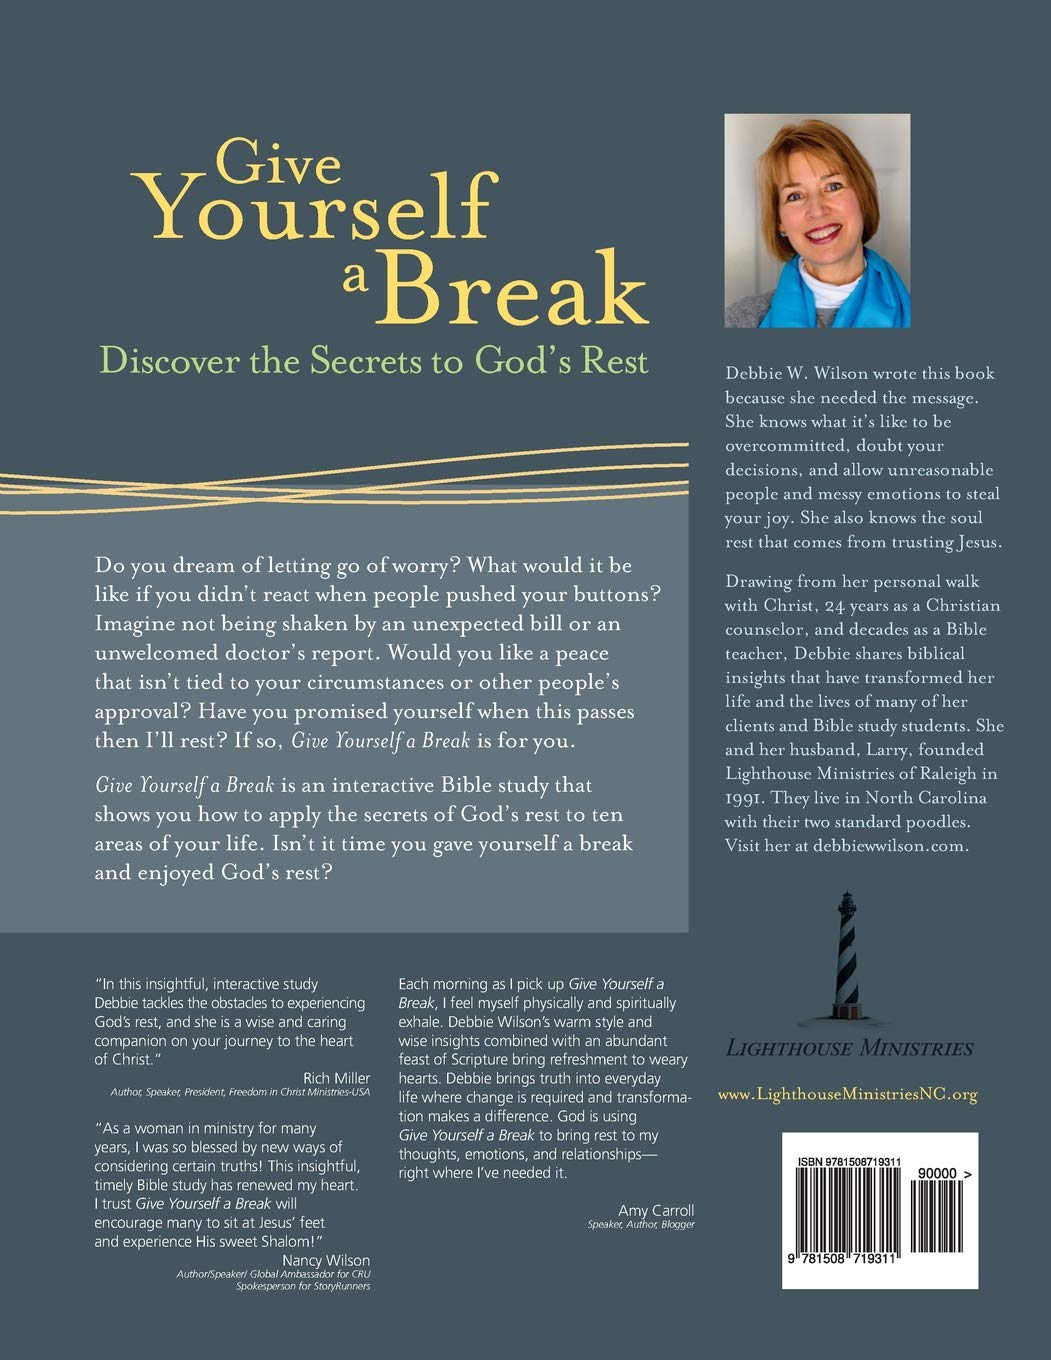 Give Yourself a Break: Discover the Secrets to God's Rest